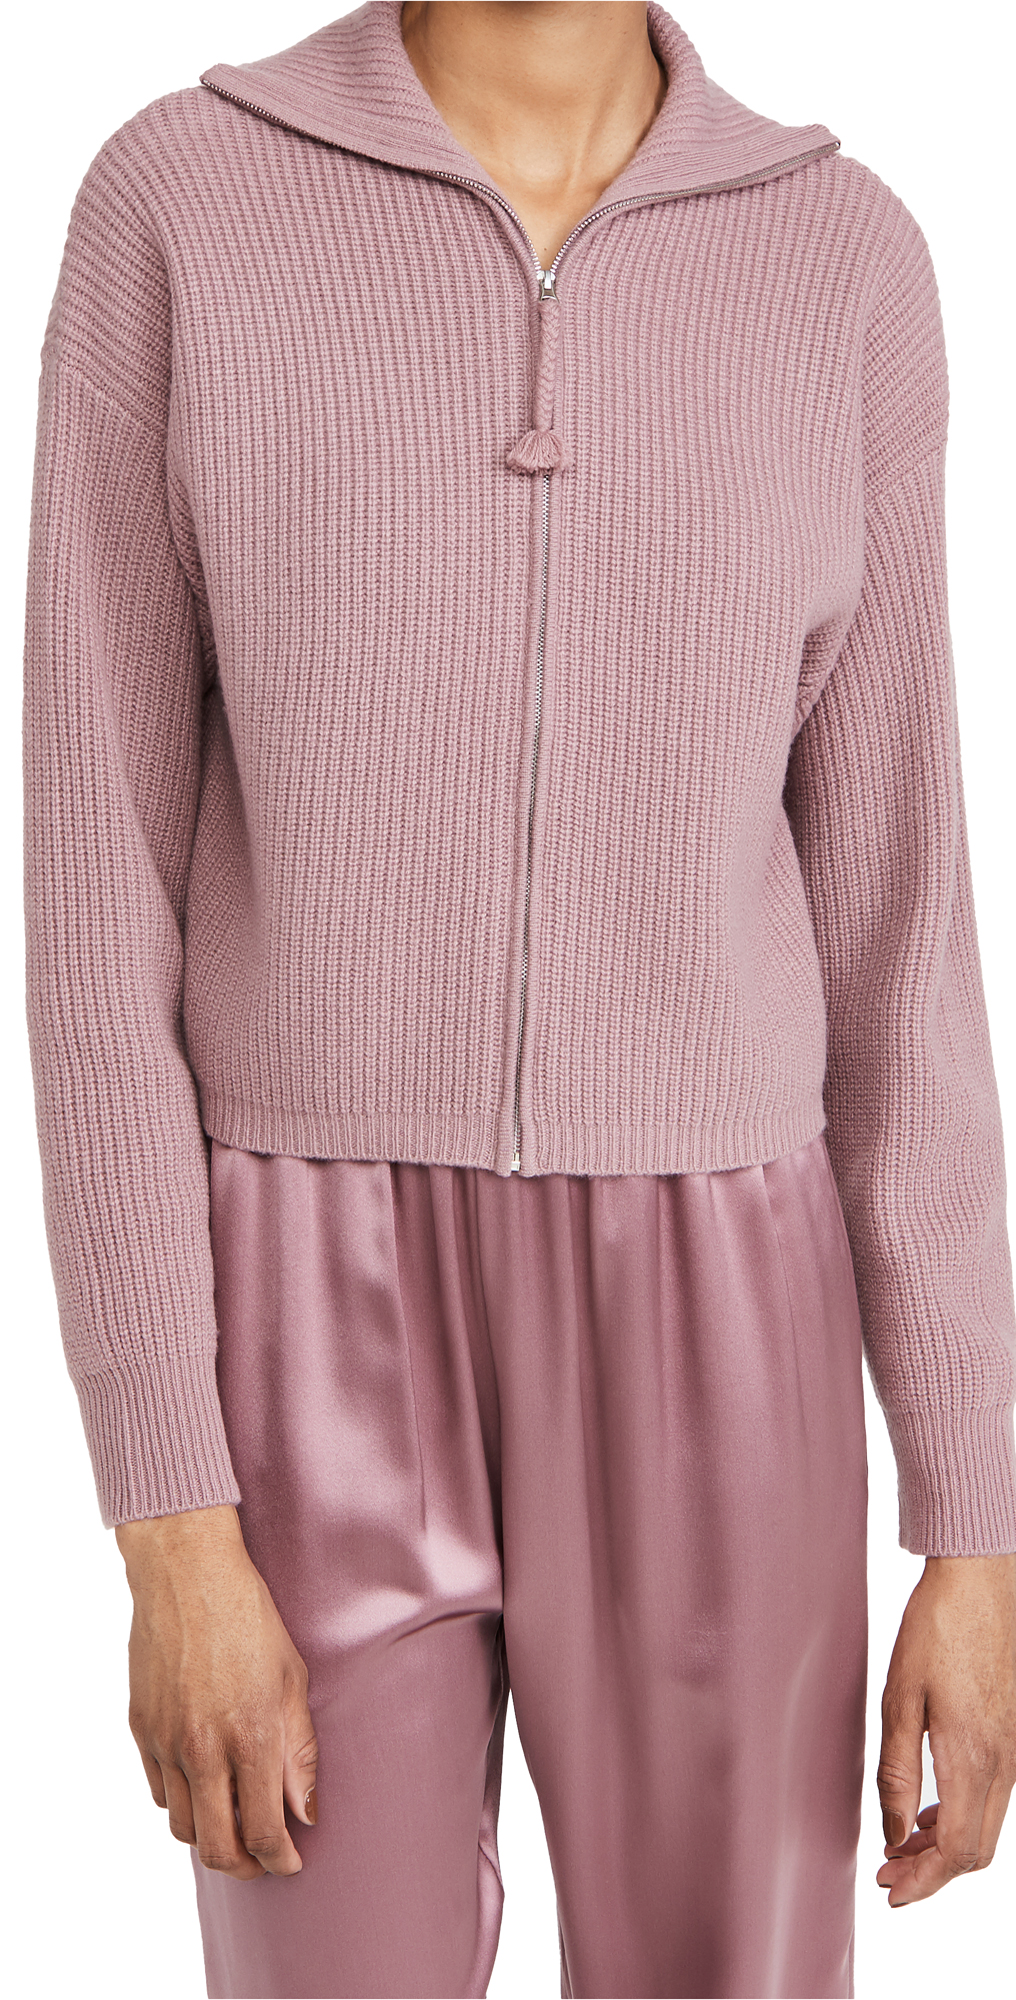 Sablyn Cashmere Cold Sweater